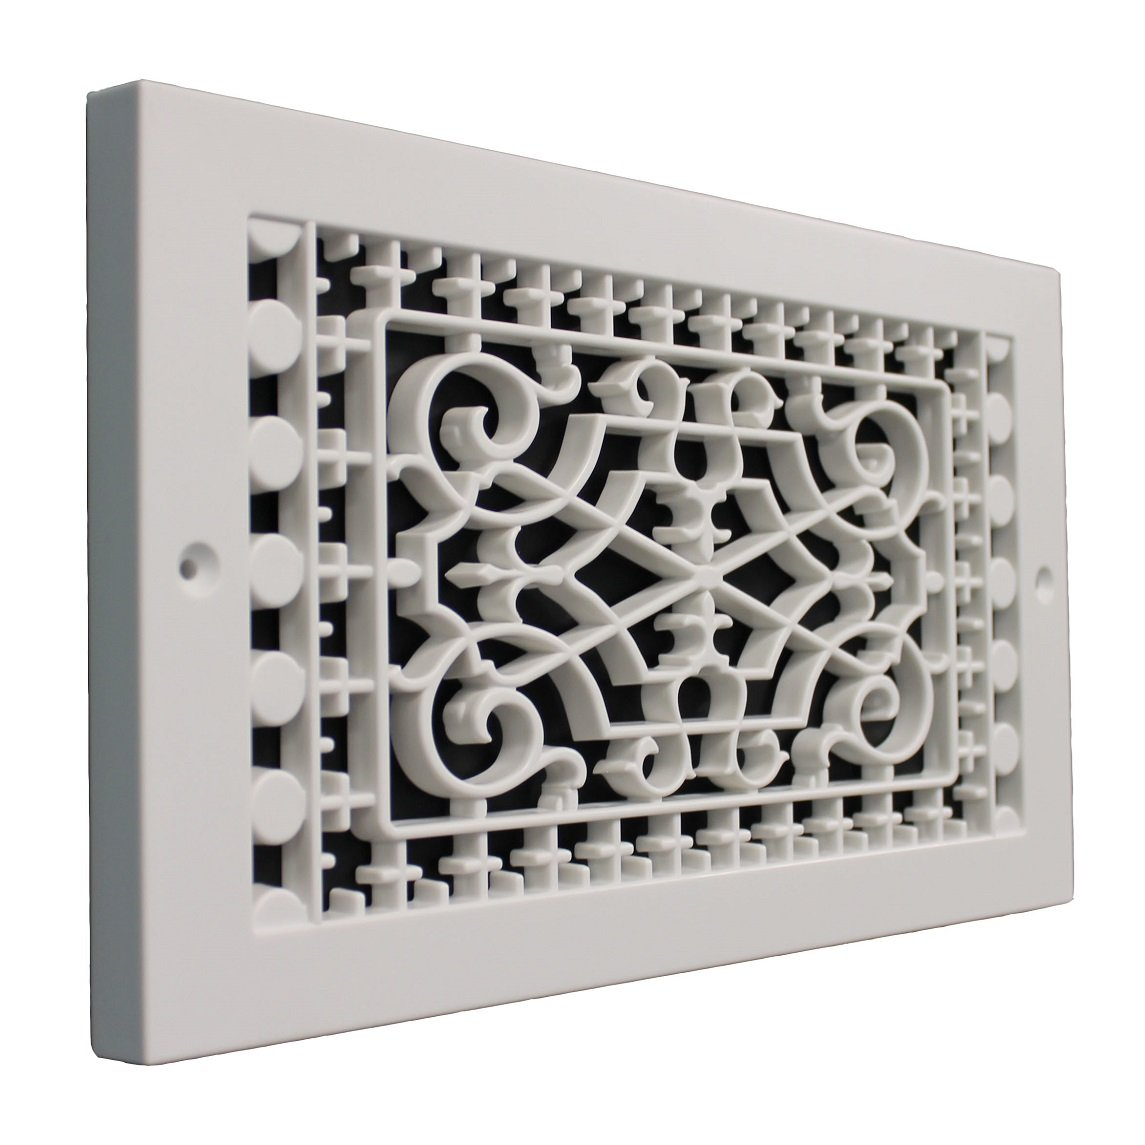 SMI Ventilation Products VBB612 Cold Air Return - 6 in x 12 in Victorian Style Base Board - Outside Dimensions 8 in x 14 in